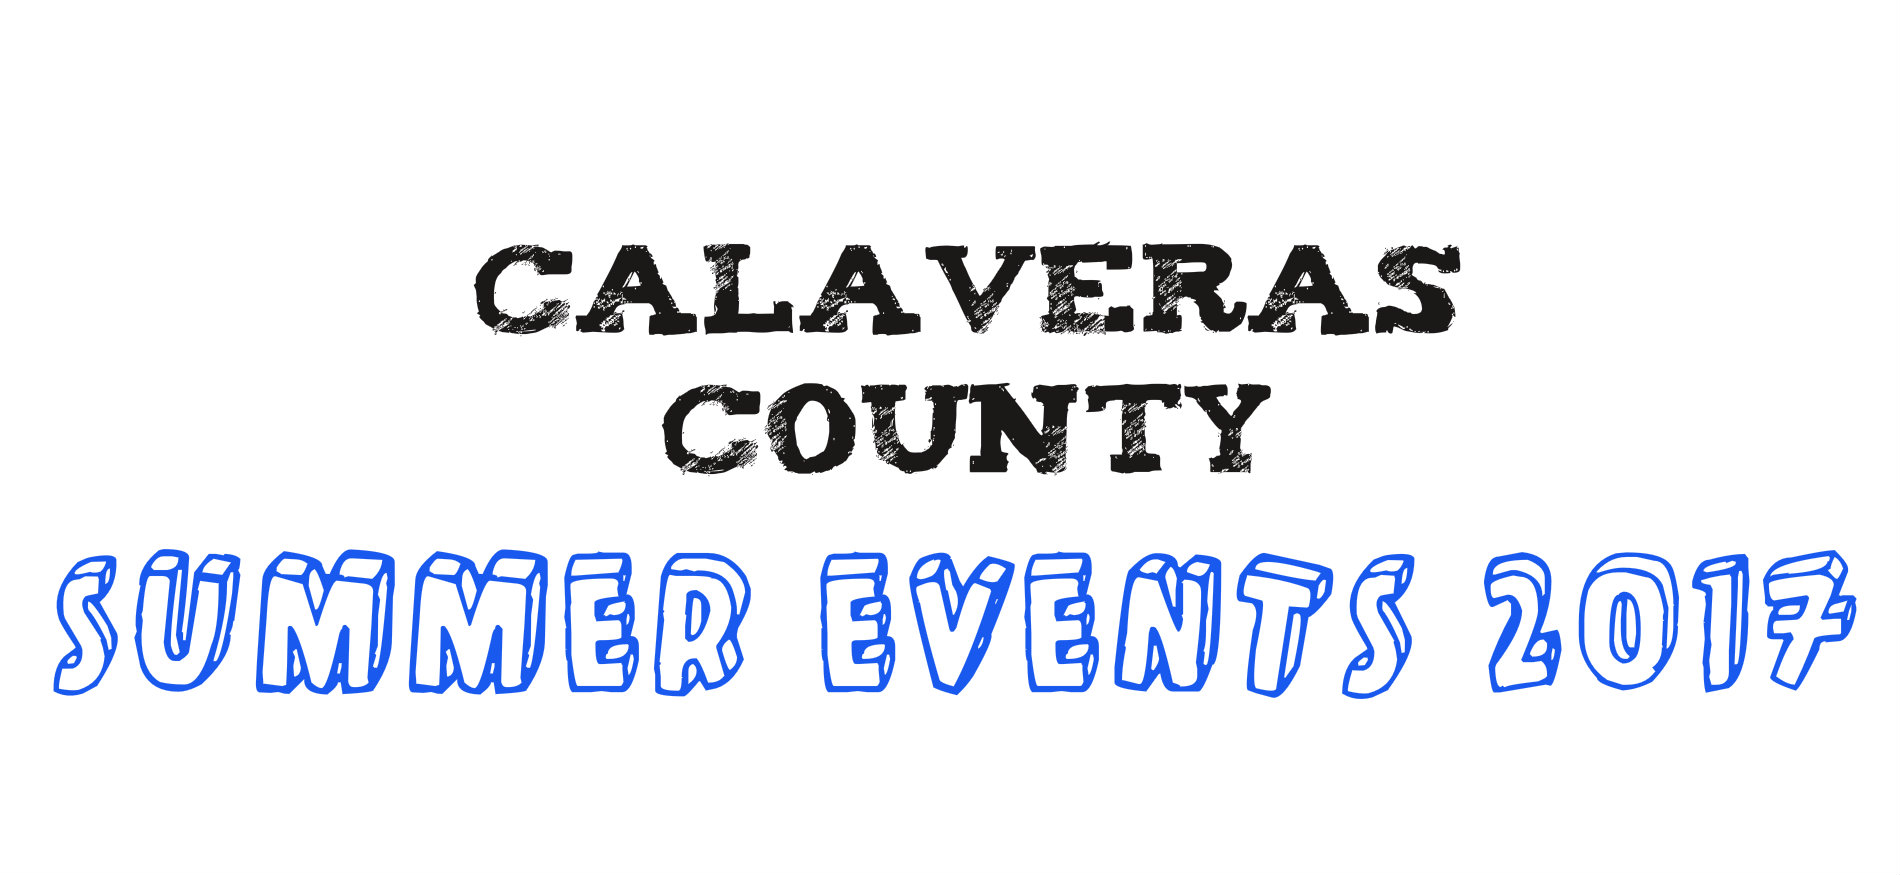 Calaveras County Summer Events 2017